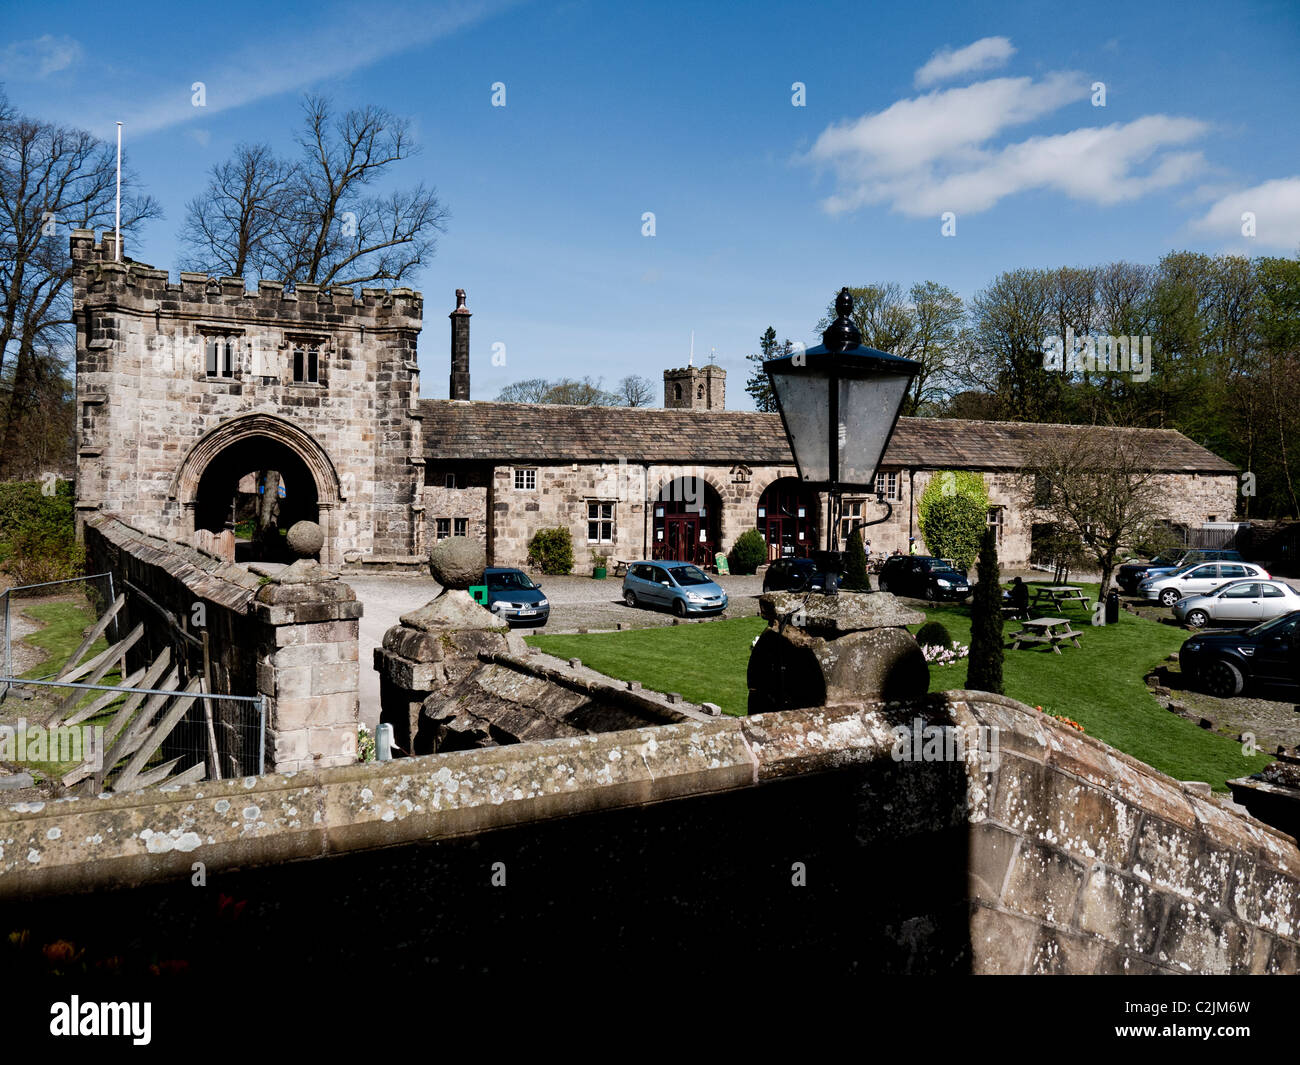 The Gatehouse at Whalley Abbey, Whalley, Clitheroe, Lancashire, England, UK. - Stock Image